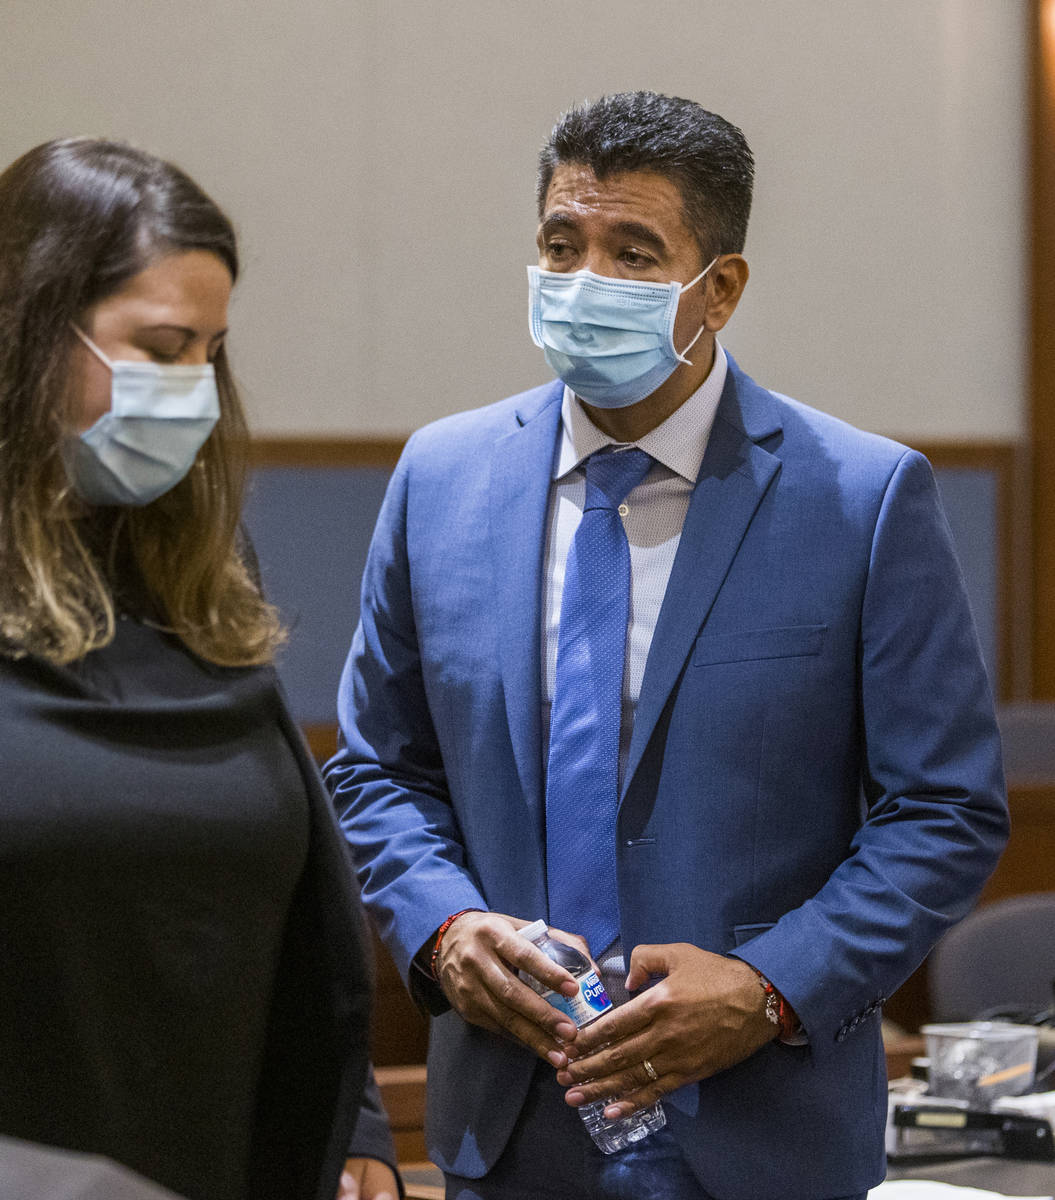 Defendant Adolfo Orozco leaves the courtroom with an attorney during a preliminary hearing in t ...